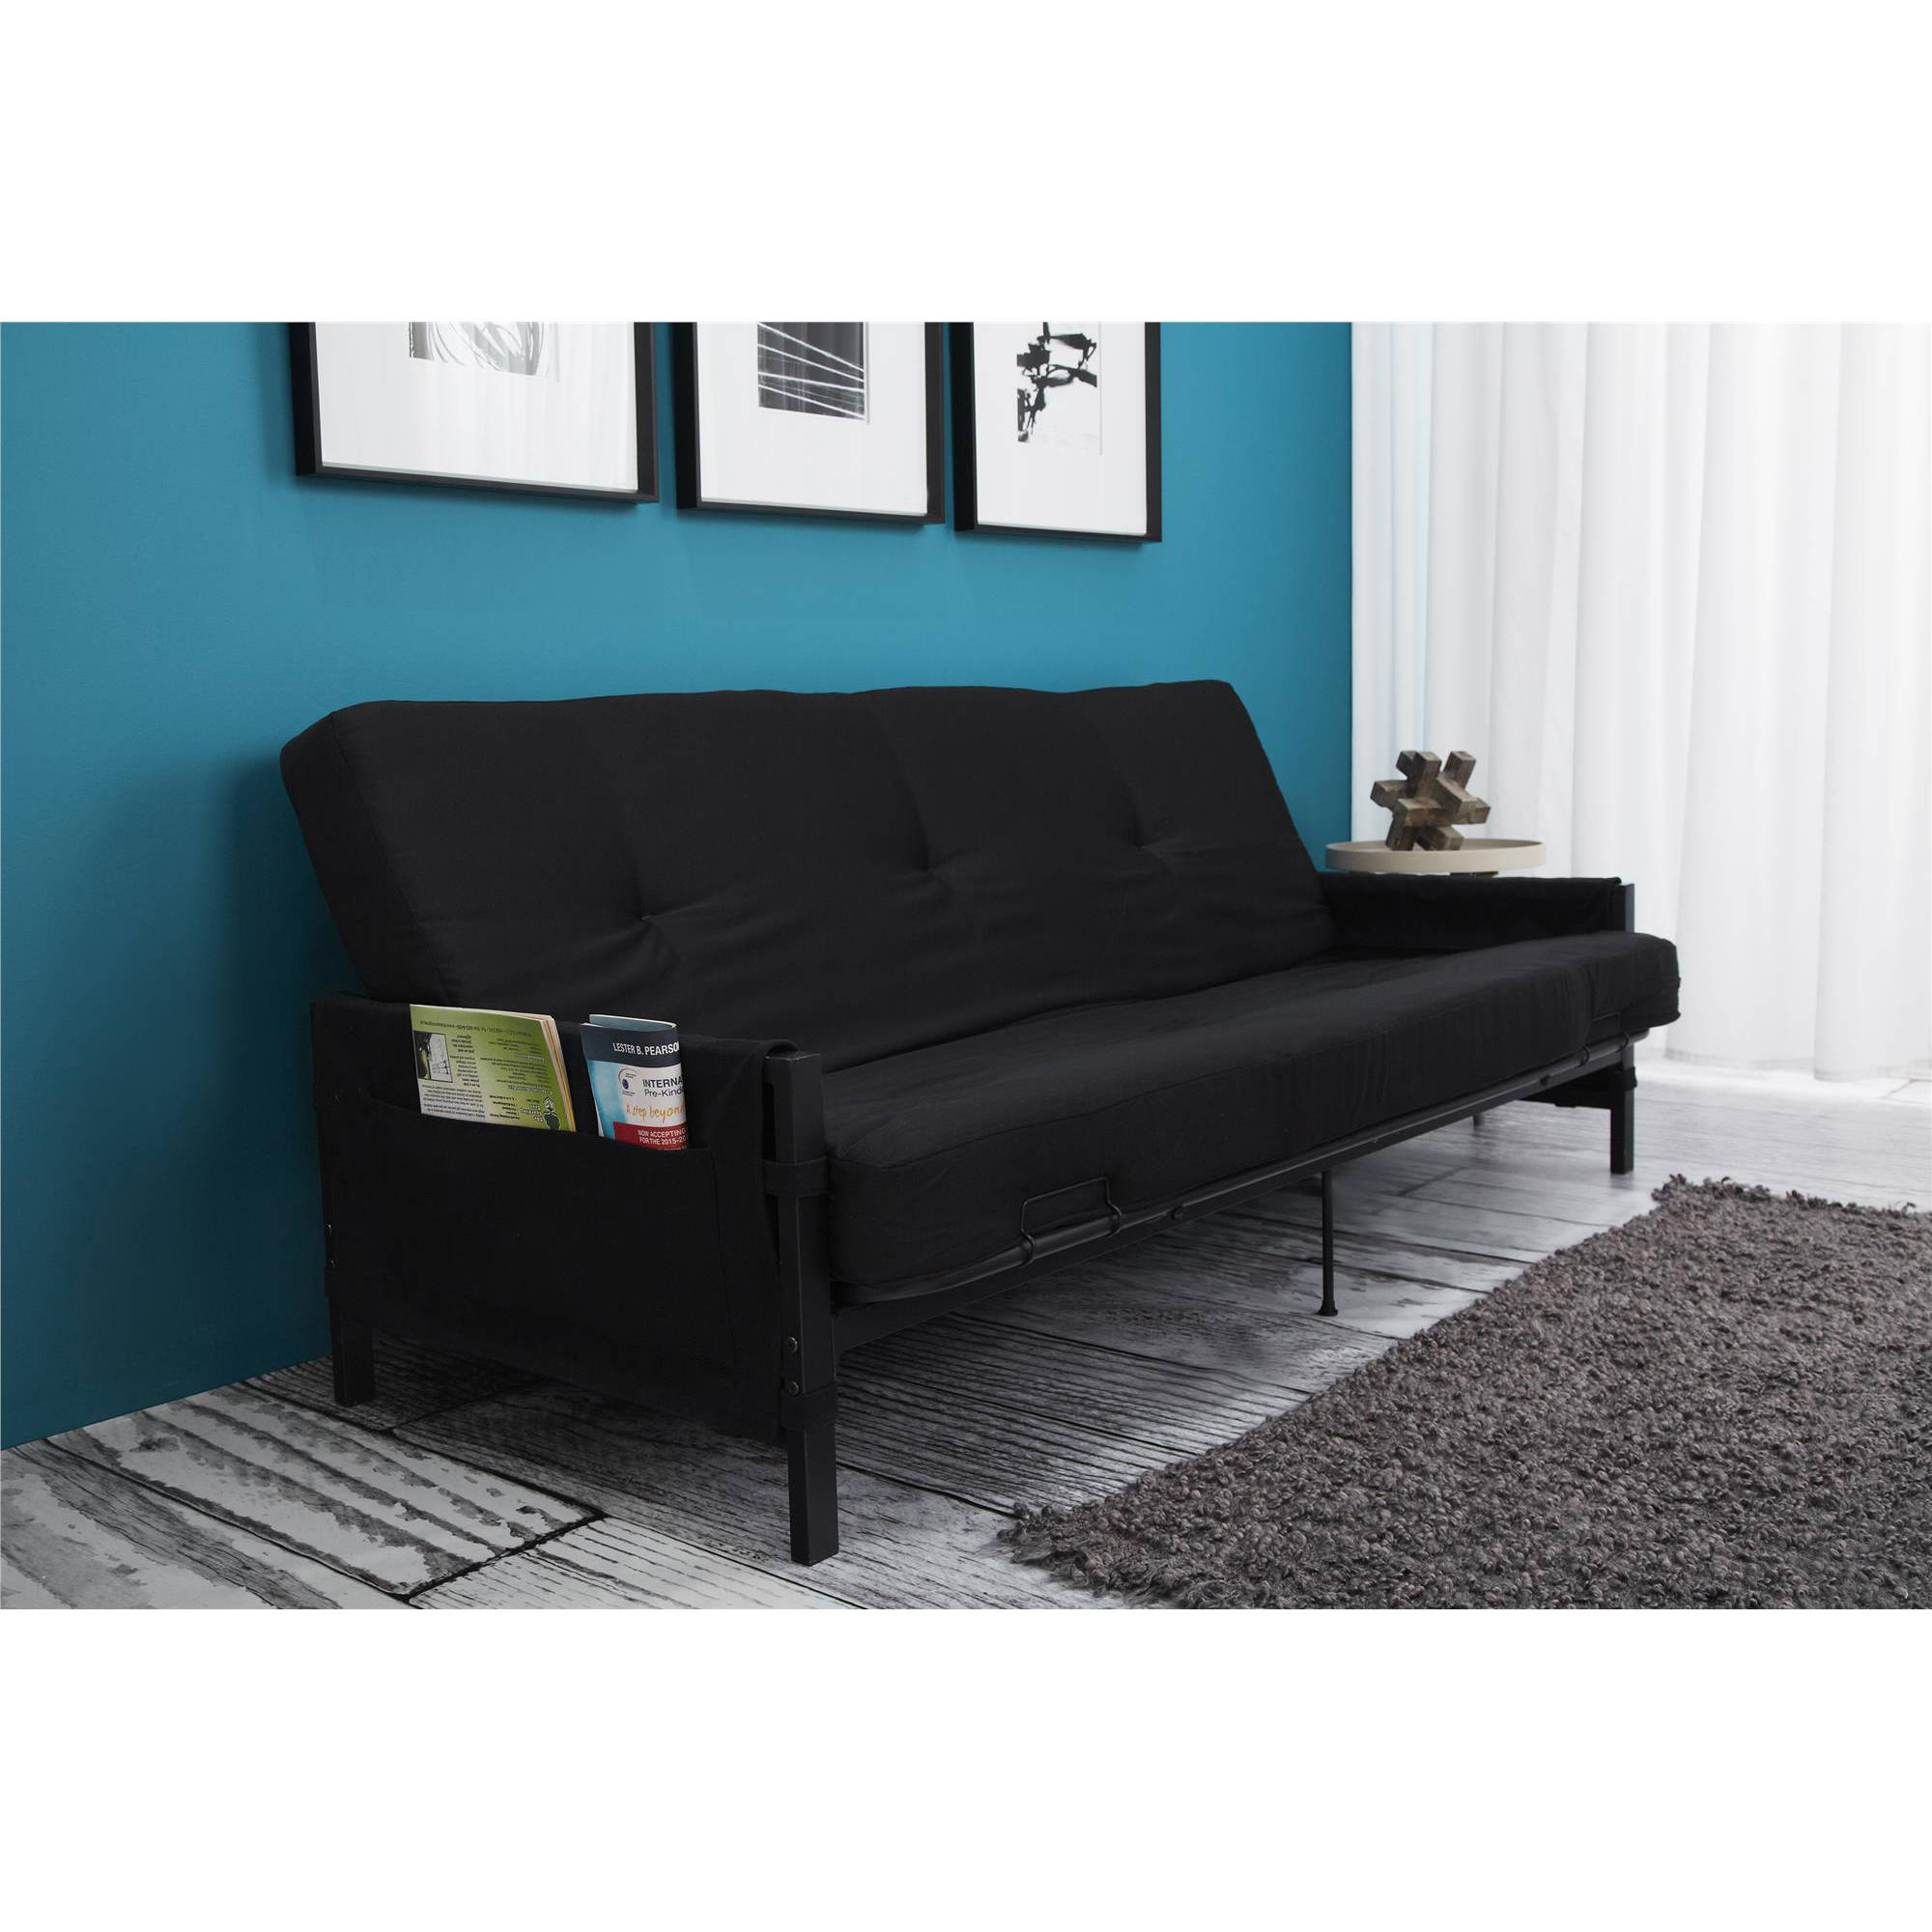 Cool Details About Full Size Futon W 6 Mattress Frame Black Storage Arm Convertible Couch Guest Creativecarmelina Interior Chair Design Creativecarmelinacom